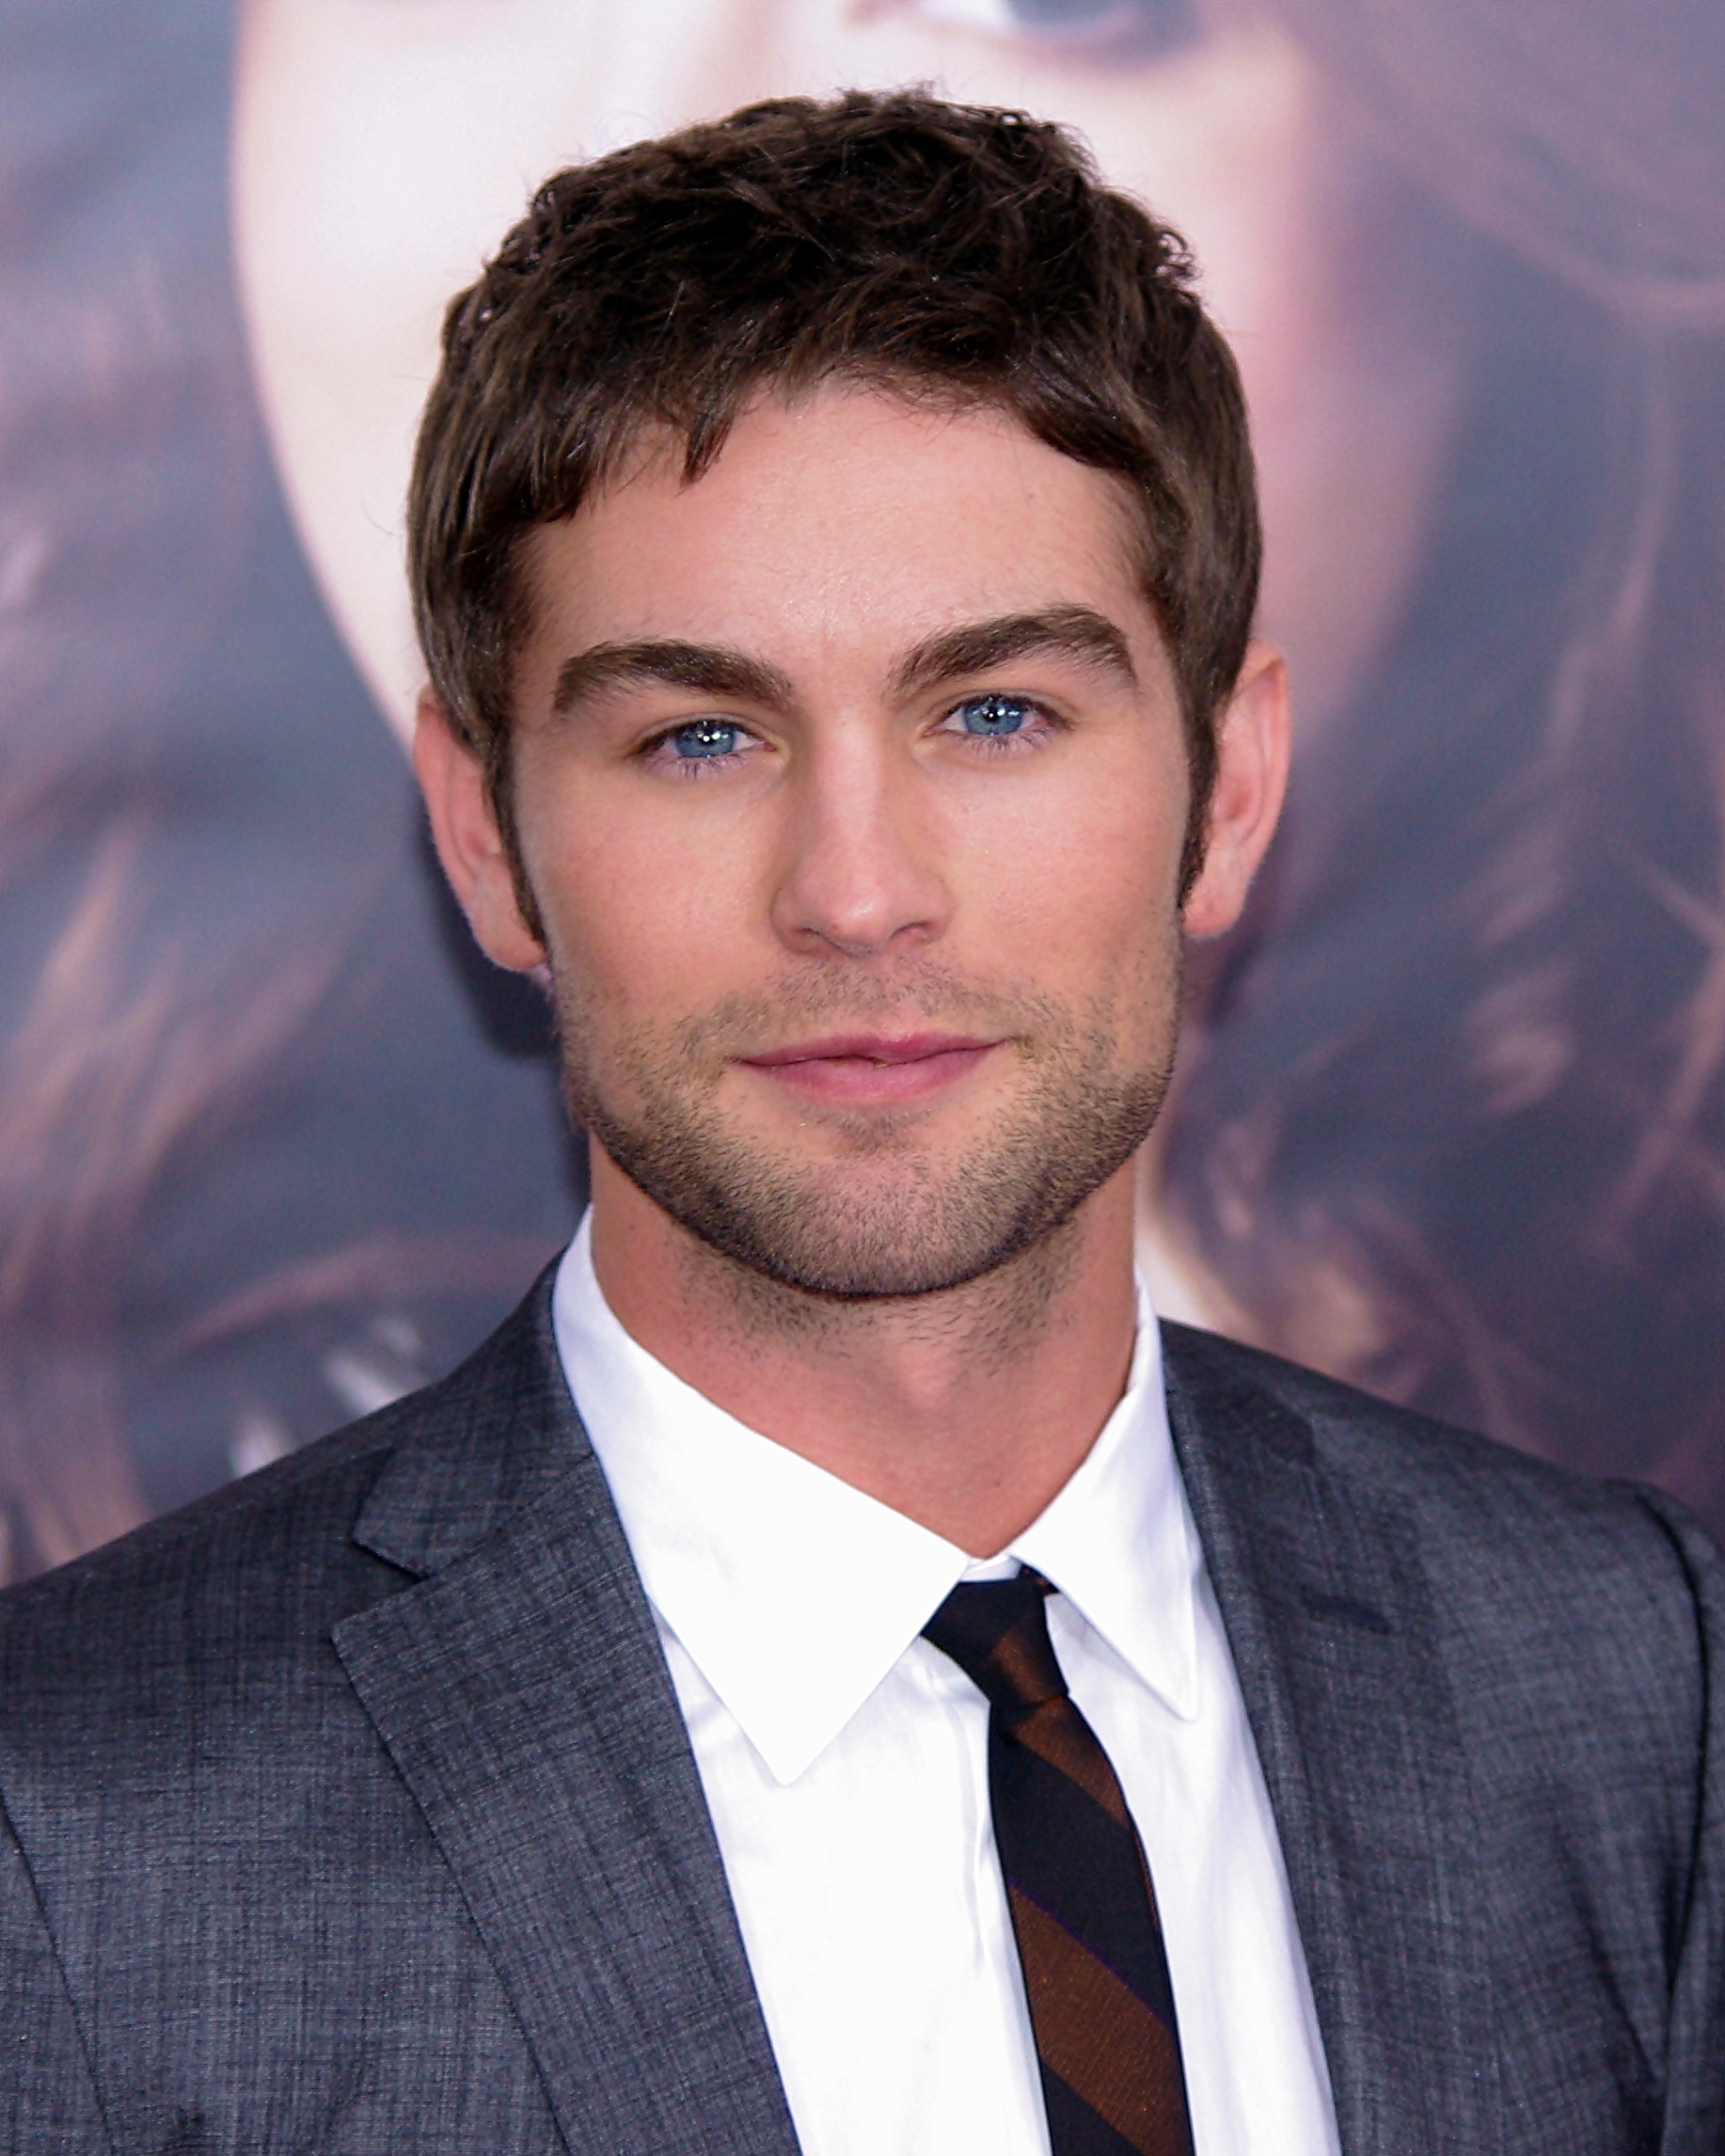 The 33-year old son of father Chris Crawford and mother Dana Crawford Plott Chace Crawford in 2018 photo. Chace Crawford earned a 0.6 million dollar salary - leaving the net worth at 4 million in 2018